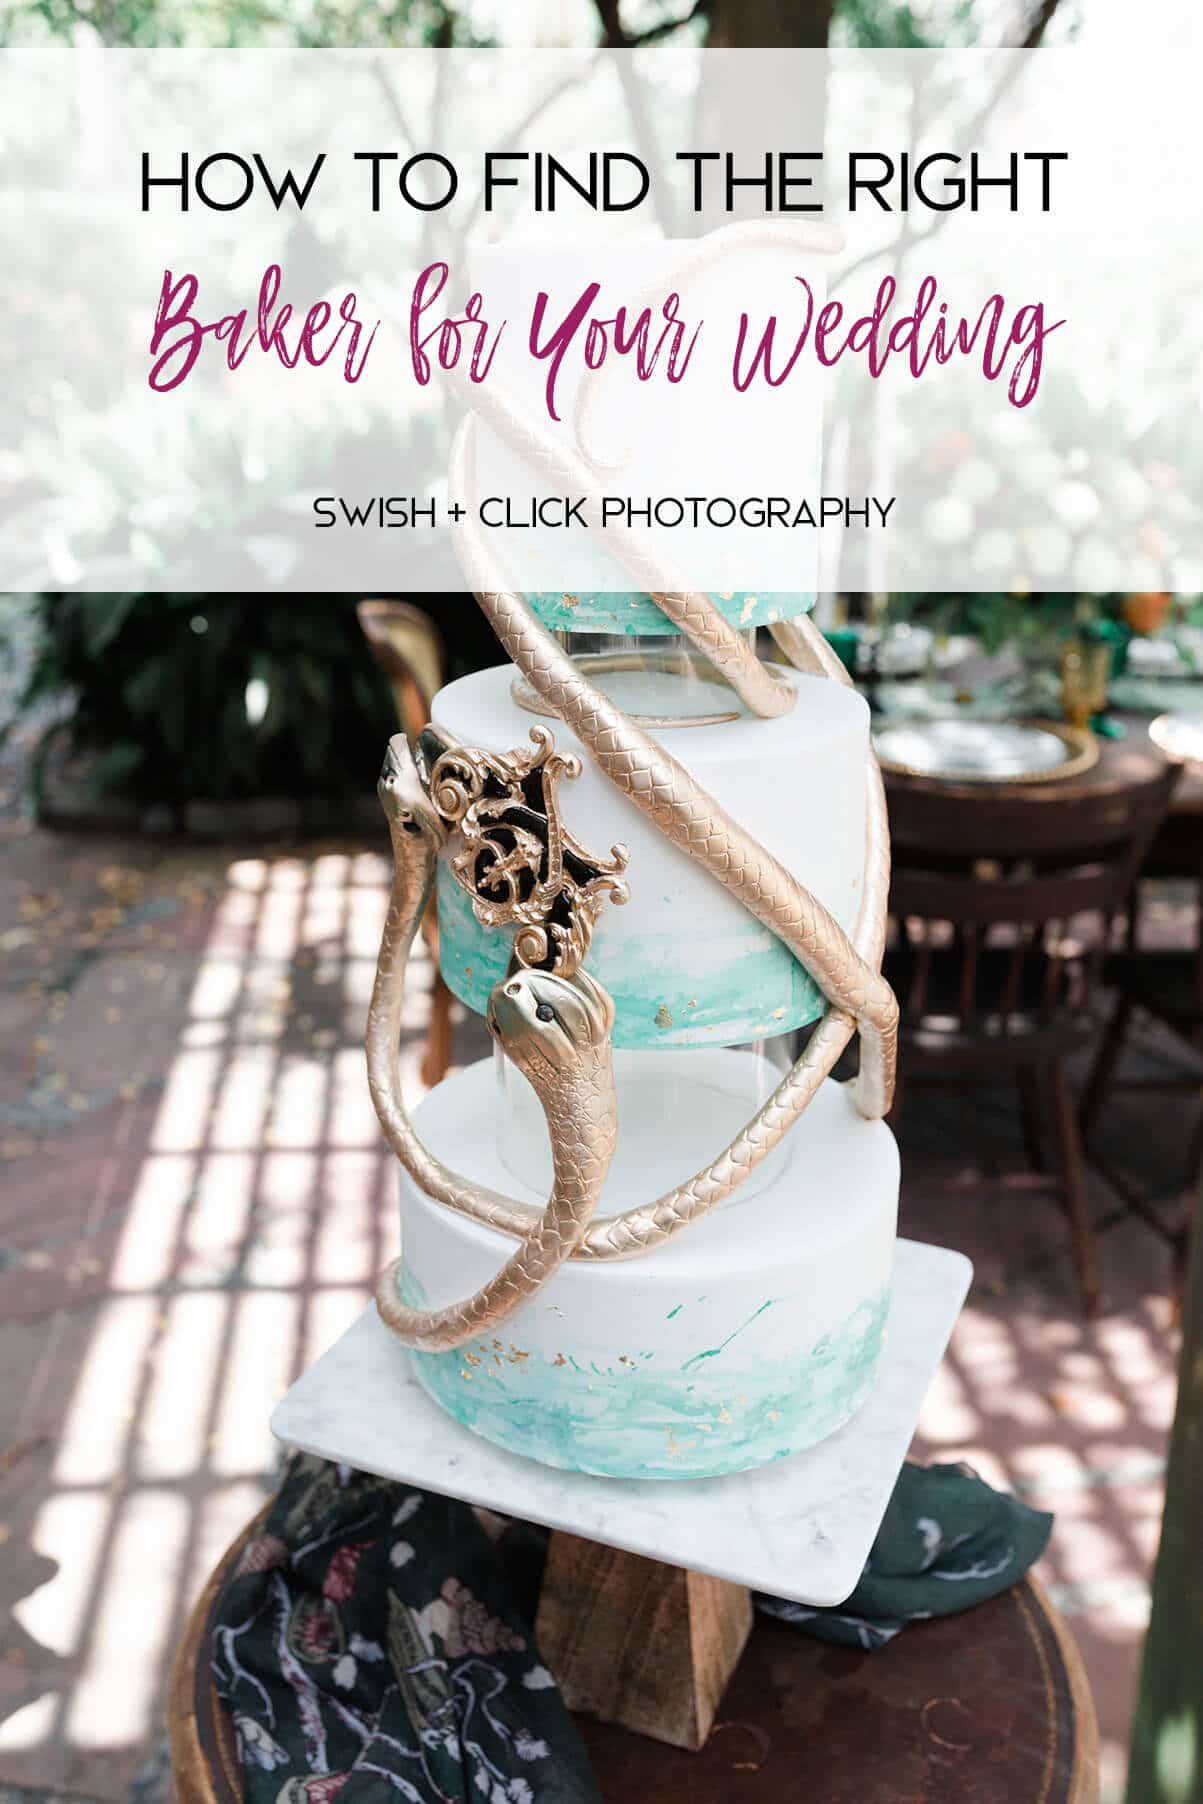 How to Find the Right Baker for Your Wedding